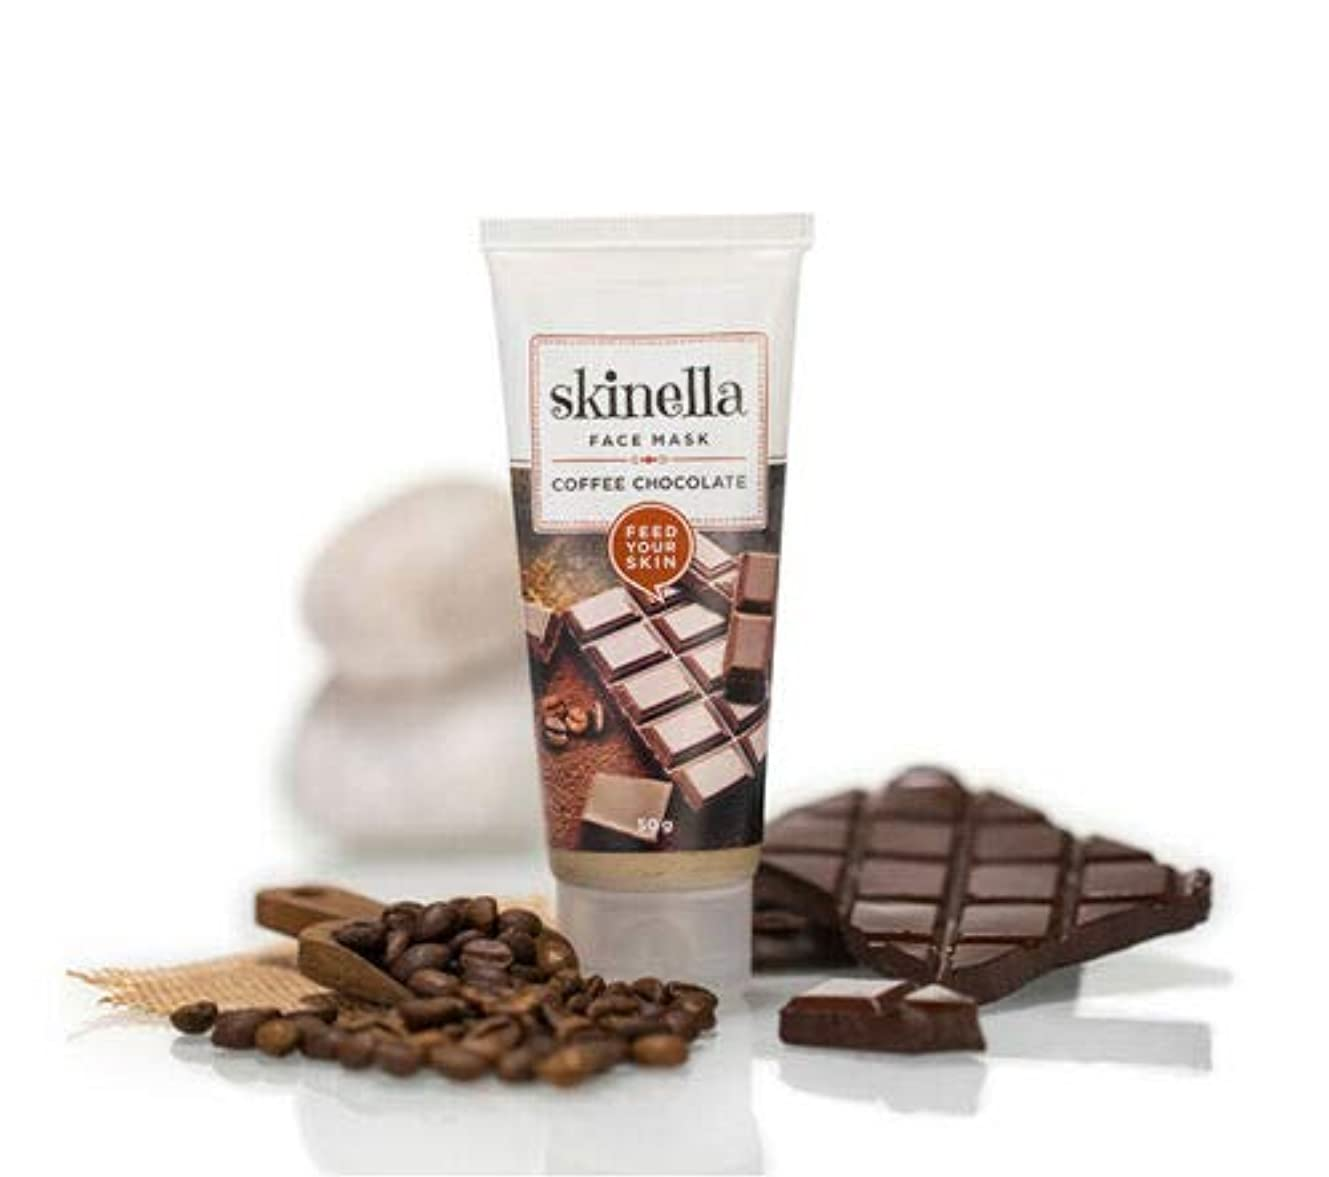 滑り台並外れて脅かすSkinella Coffee Chocolate Face Mask 50g for a hydrated and rejuvenated look Skinellaコーヒーチョコレートフェイスマスク50g